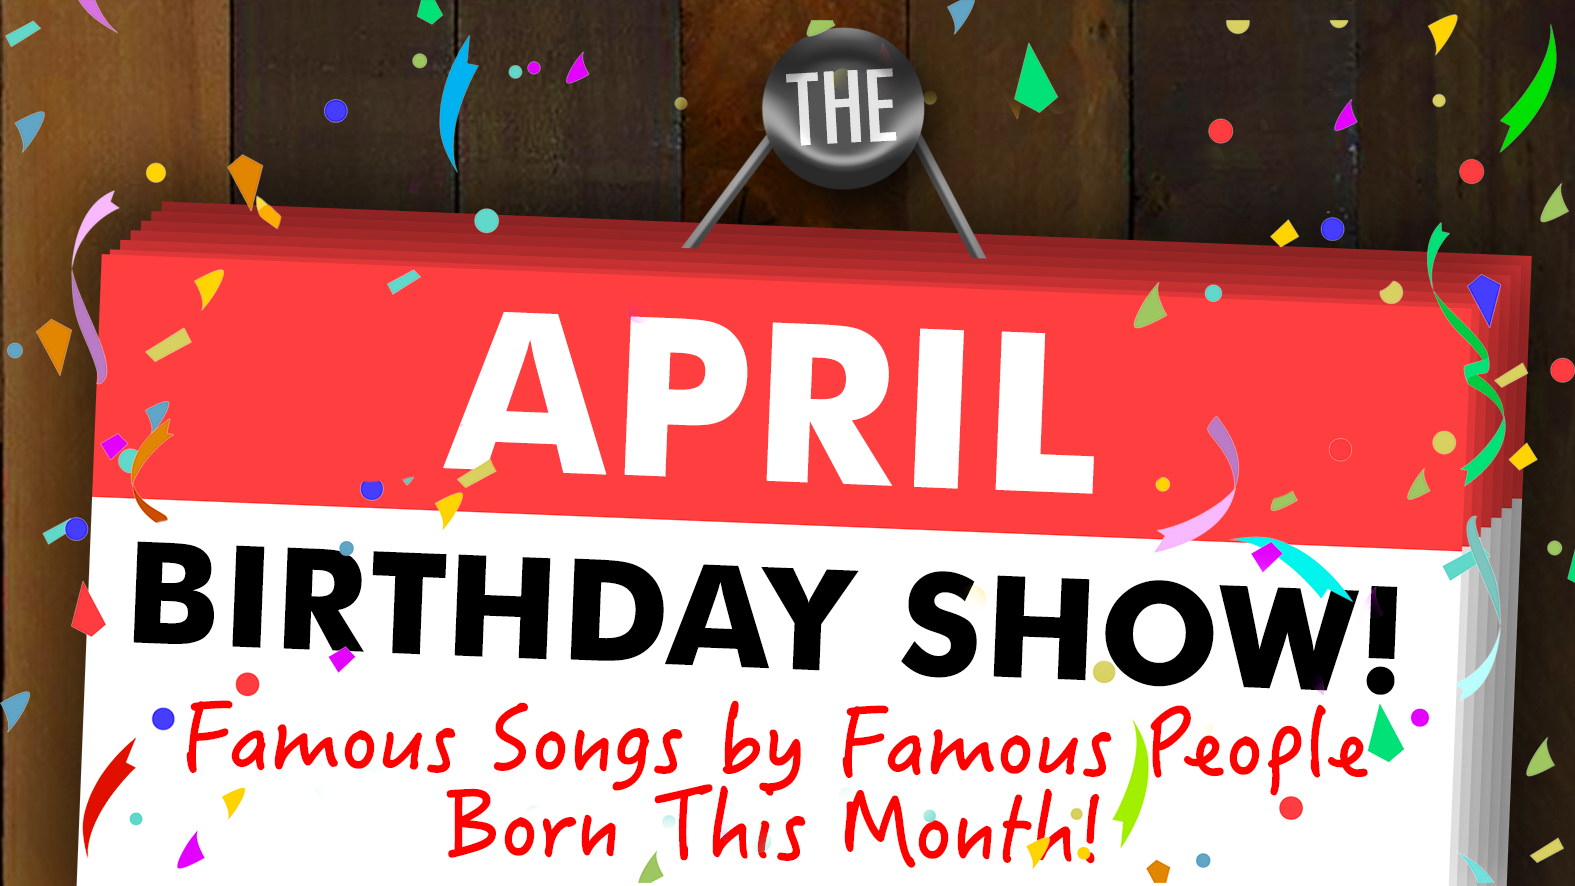 The April Birthday Show! Famous Songs by Famous People Born This Month!